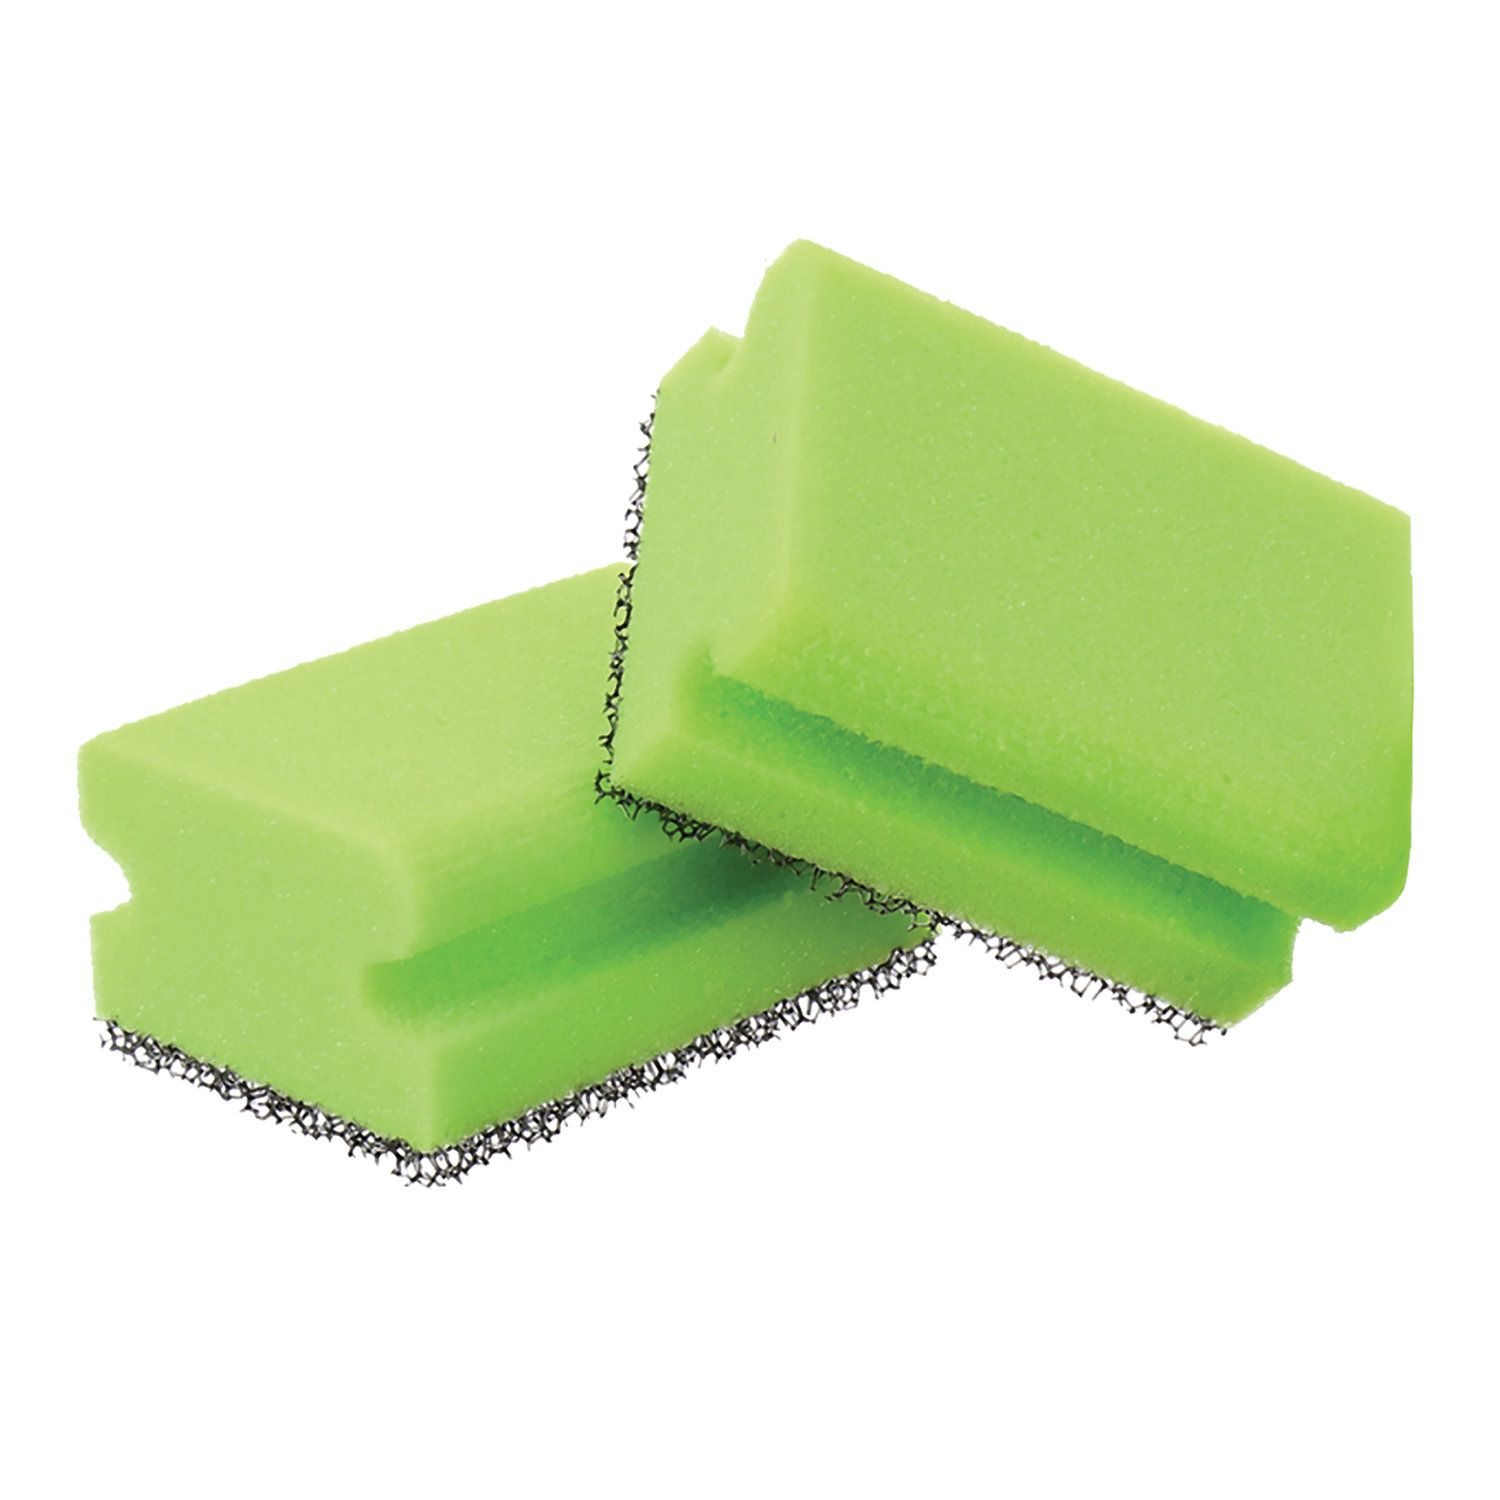 "PACLAN / Household scouring sponges ""Practi Soft Power"" profile, SET 2 pcs."